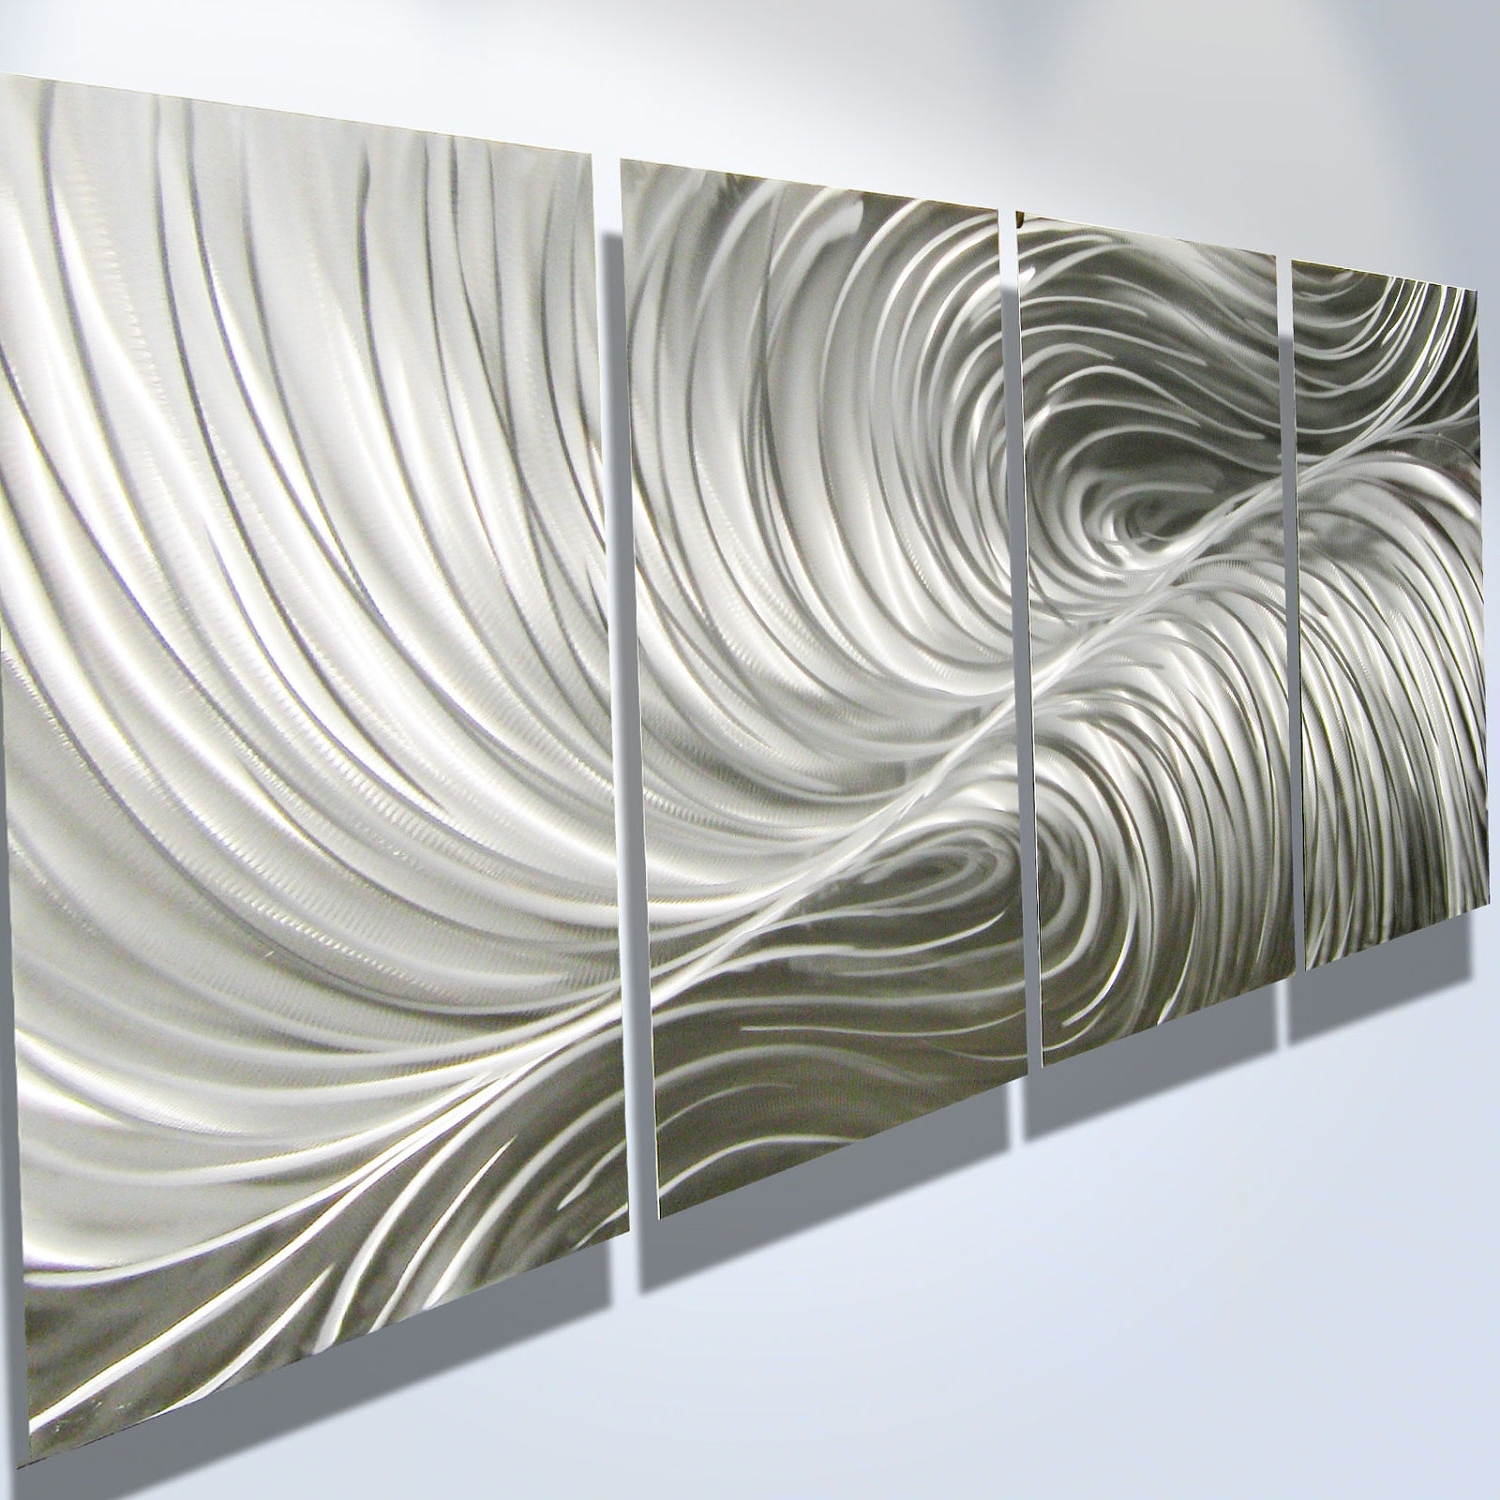 Aluminum Abstract Wall Art Regarding Widely Used Metal Wall Art Decor Abstract Aluminum Contemporary Modern (View 3 of 15)